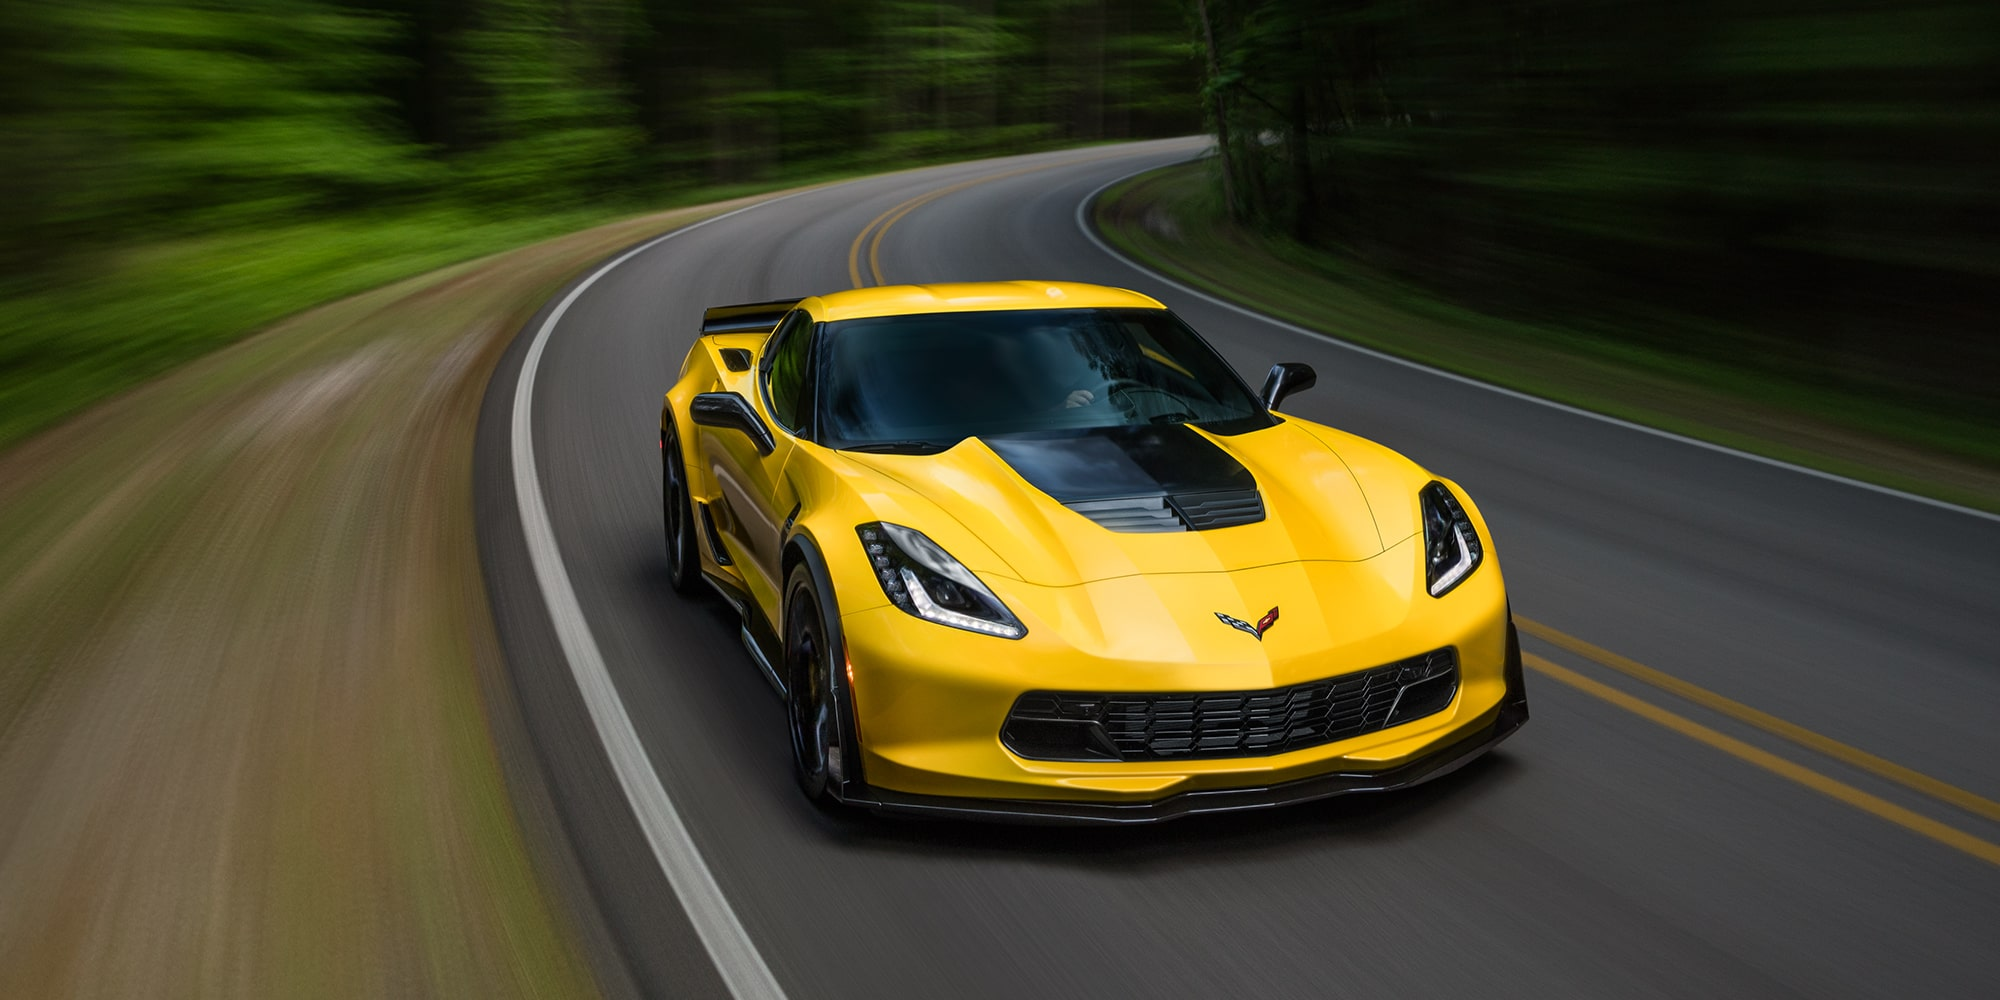 2019 Corvette Z06 Sports Car Safety